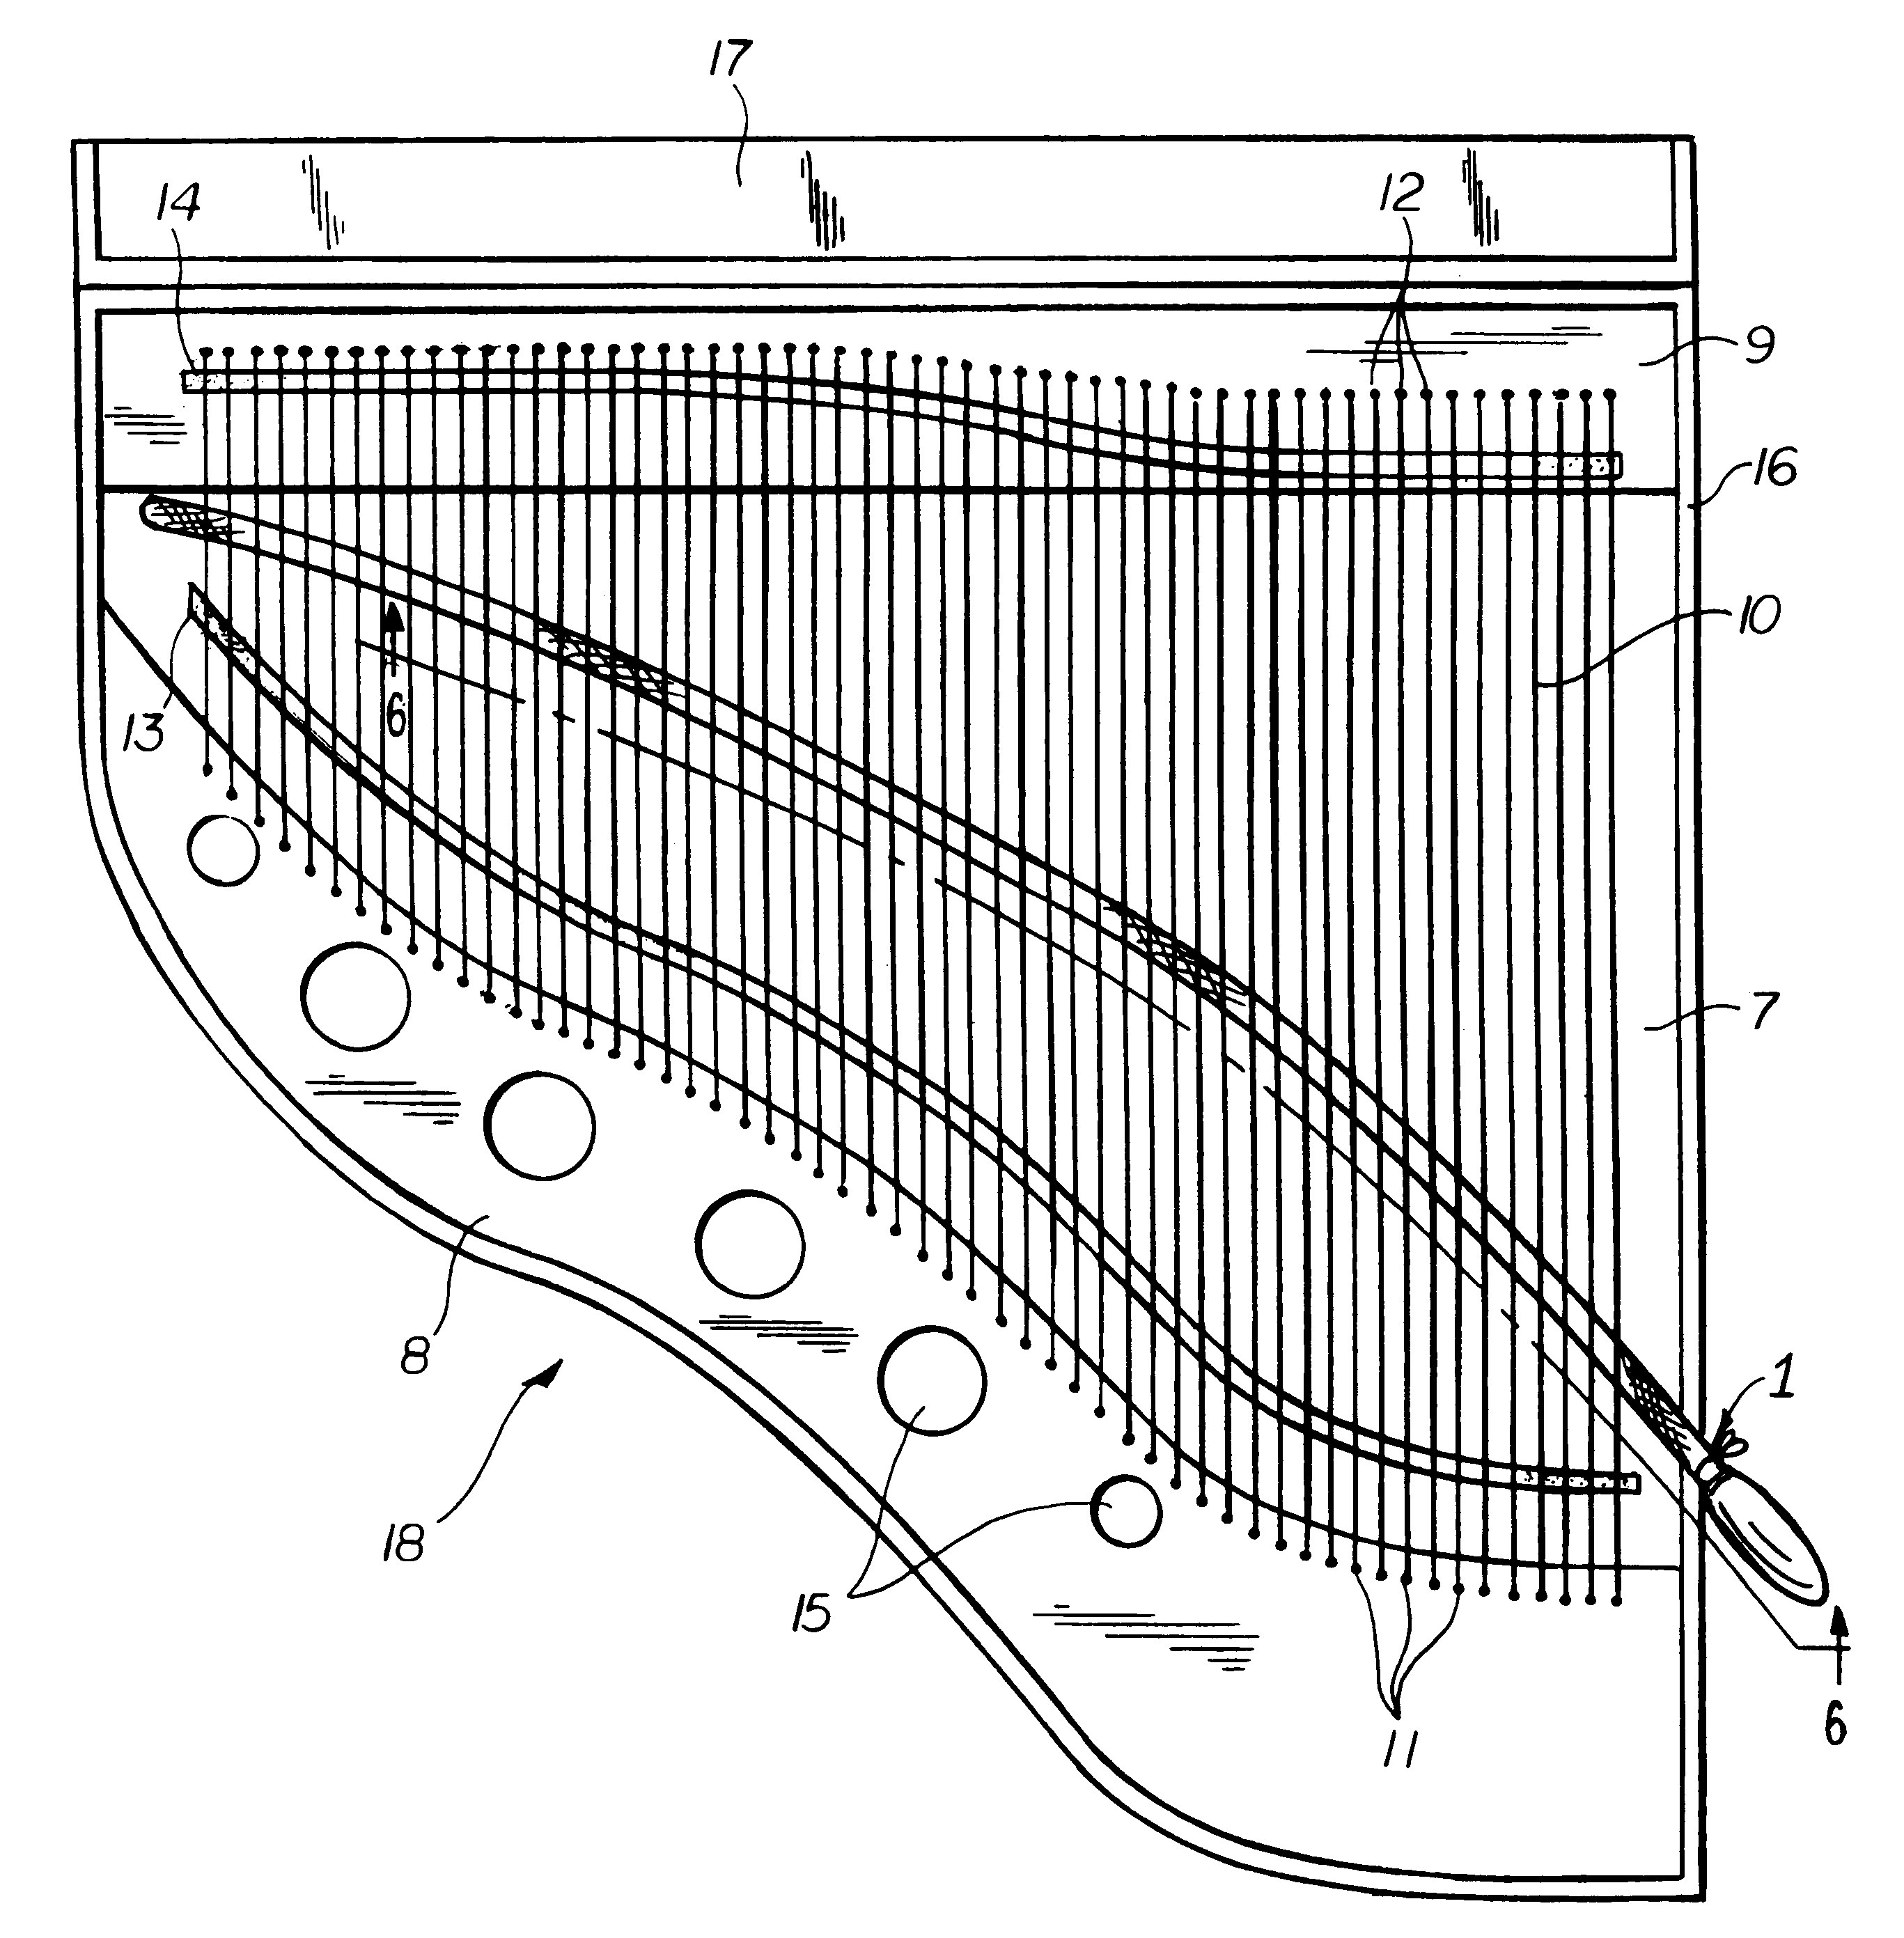 Patent Us6237184 Duster For Pianos And The Like Google